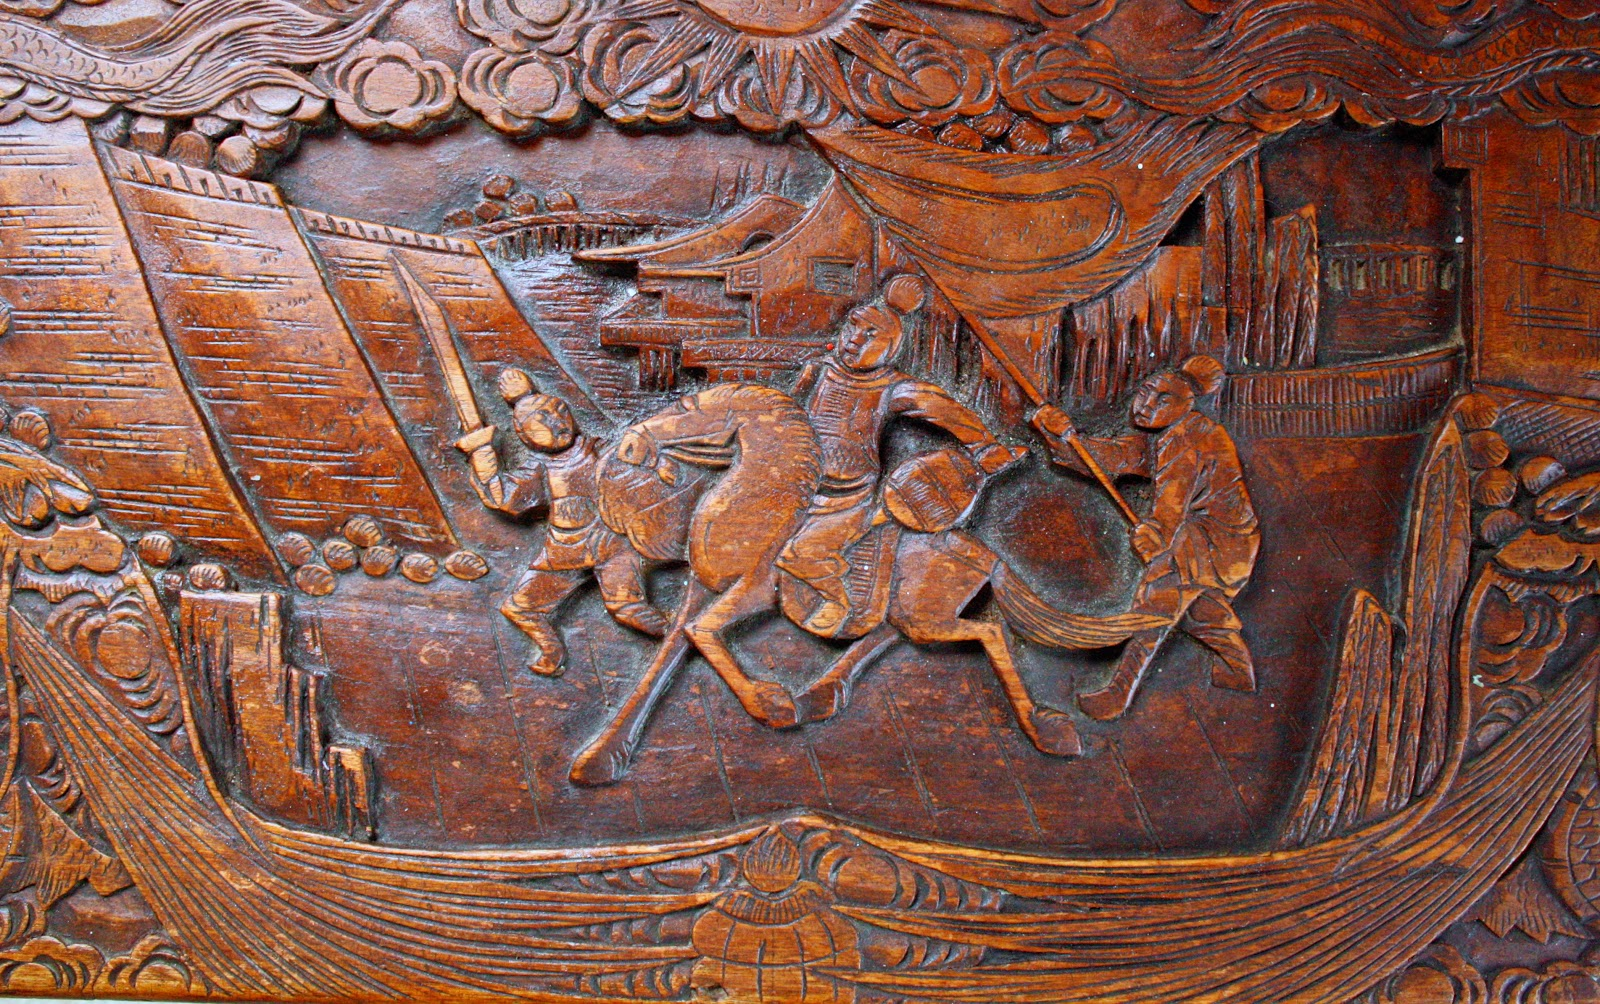 A scene of a battle on a camphor wood chest.